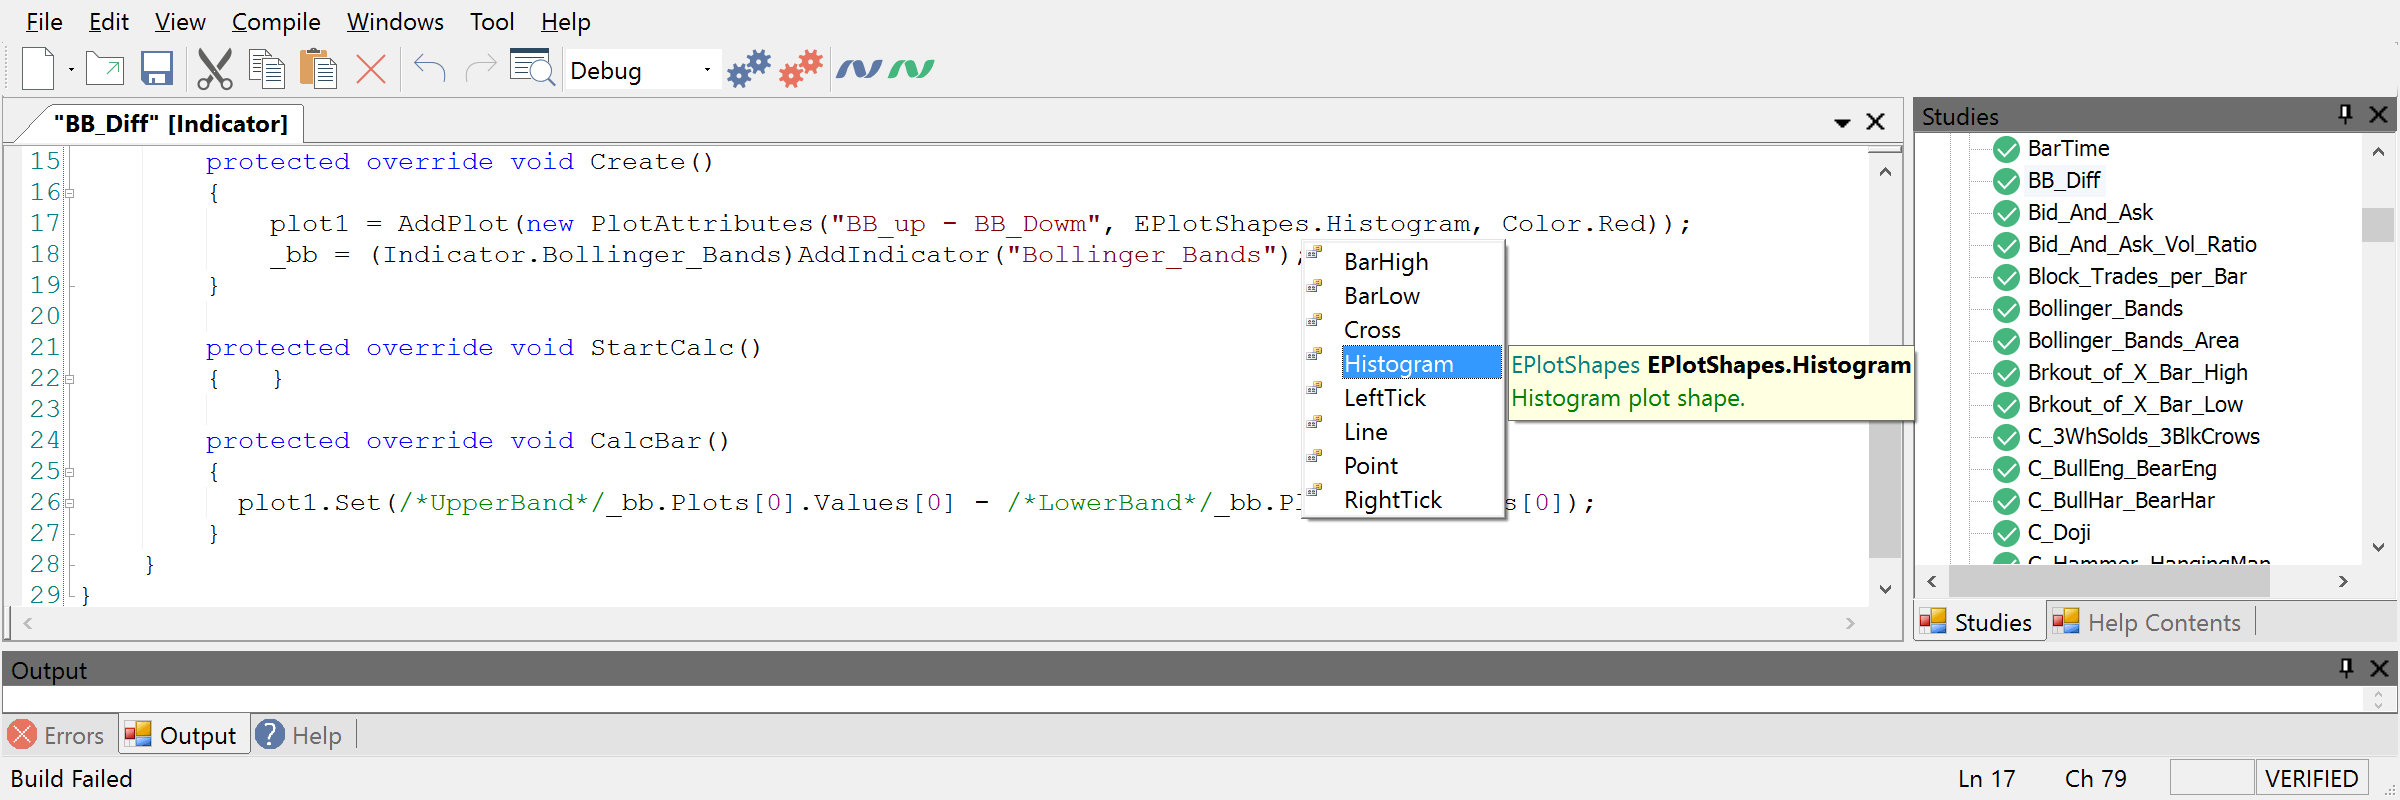 Develop_complex_strategies_in_C_and_VB_NET